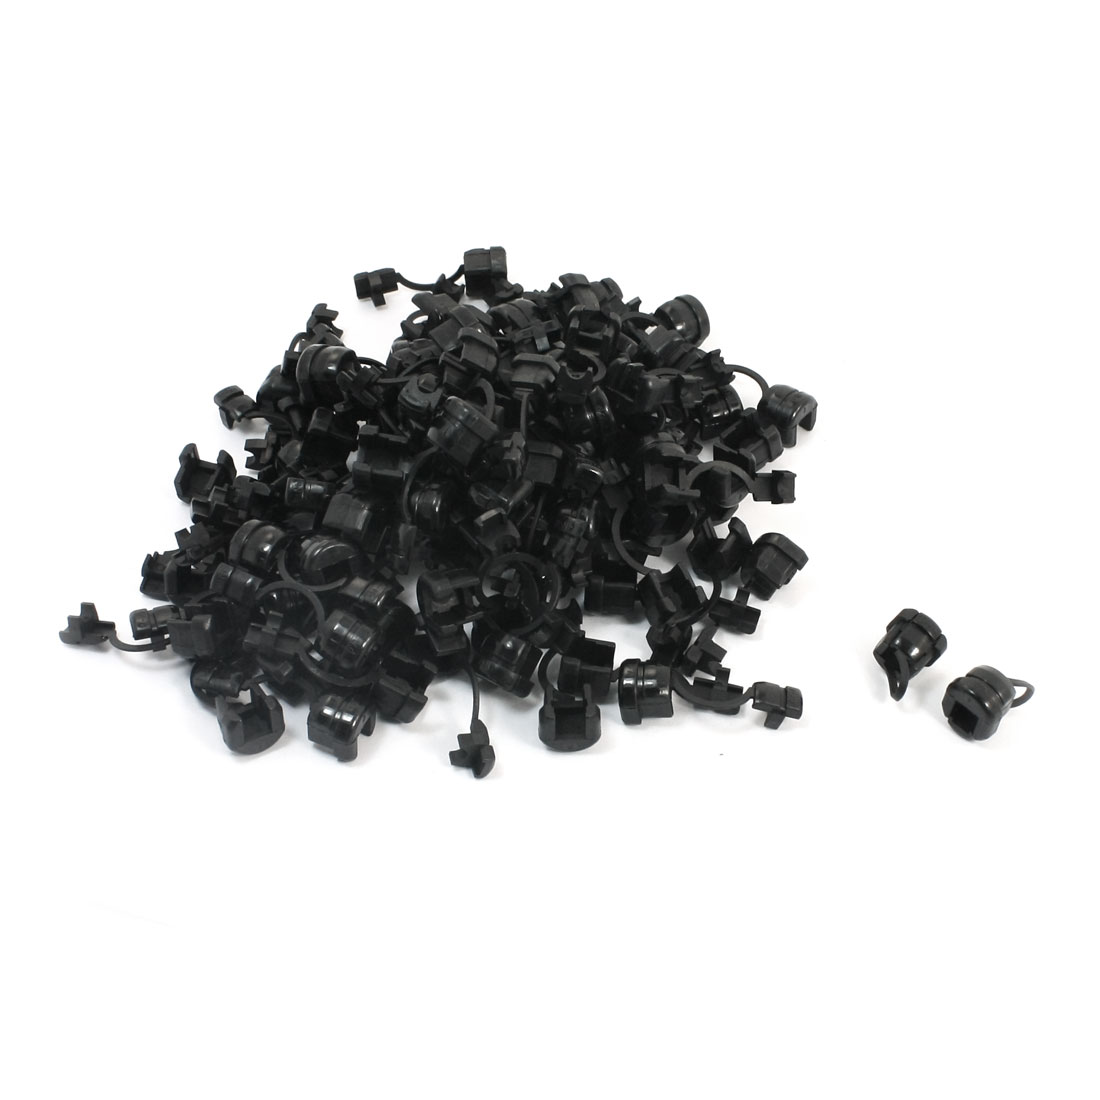 100 Pcs Nylon Wires Protectors Strain Relief Bushing for 4.5mm Round Cables